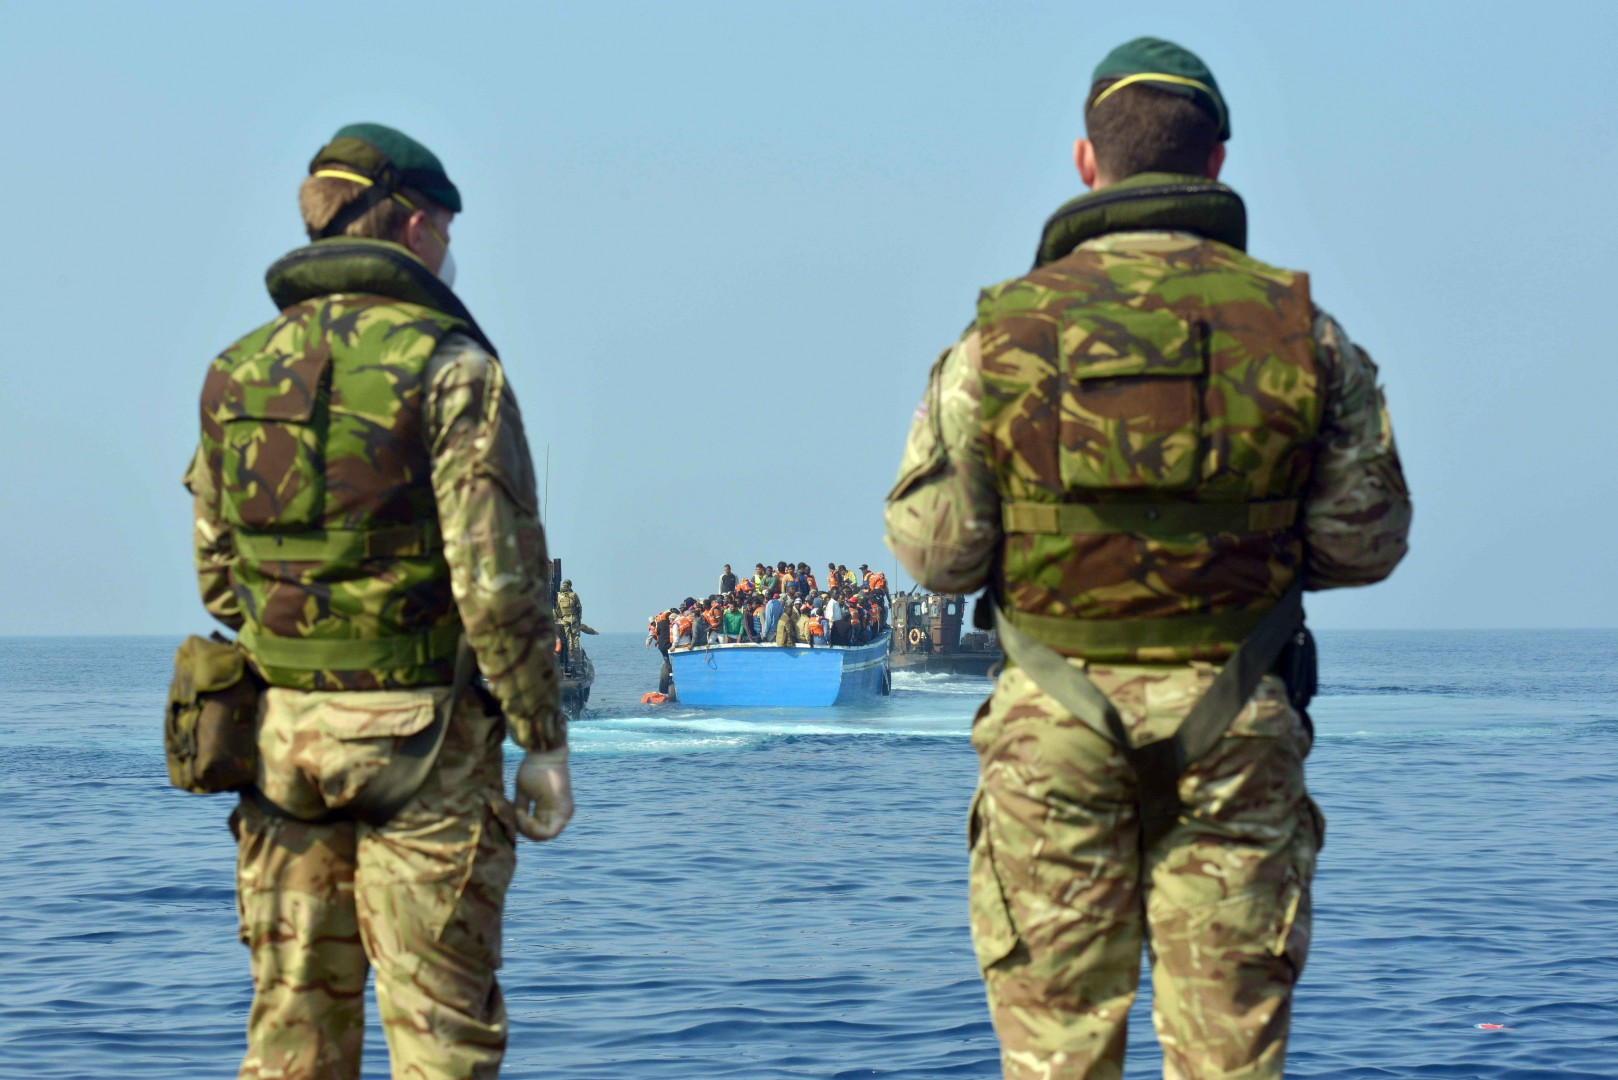 """Royal Marines from HMS Bulwark help rescue migrants stranded on a boat, thirty miles off the Libyan coast.  PRESS ASSOCIATION Photo. Picture date: Sunday June 7, 2015. The rescued migrants were taken to the Royal Navy ship where they were searched and processed before being handed over to the Italian authorities. Britain is a country that """"doesn't walk on by"""", David Cameron said as HMS Bulwark undertook another rescue mission off Libya. The Royal Navy warship picked up at least 500 migrants found in four boats in the seas off the north African country. Arriving at the G7 summit in Garmisch-Partenkirchen, Germany, the Prime Minister said the flagship had been deployed because the UK is a """"country with a conscience"""".  But he warned that the causes of the mass exodus from Libya must be dealt with, not just the consequences. See PA story DEFENCE Migrants. Photo credit should read: Rowan Griffiths/Daily Mirror/PA Wire"""